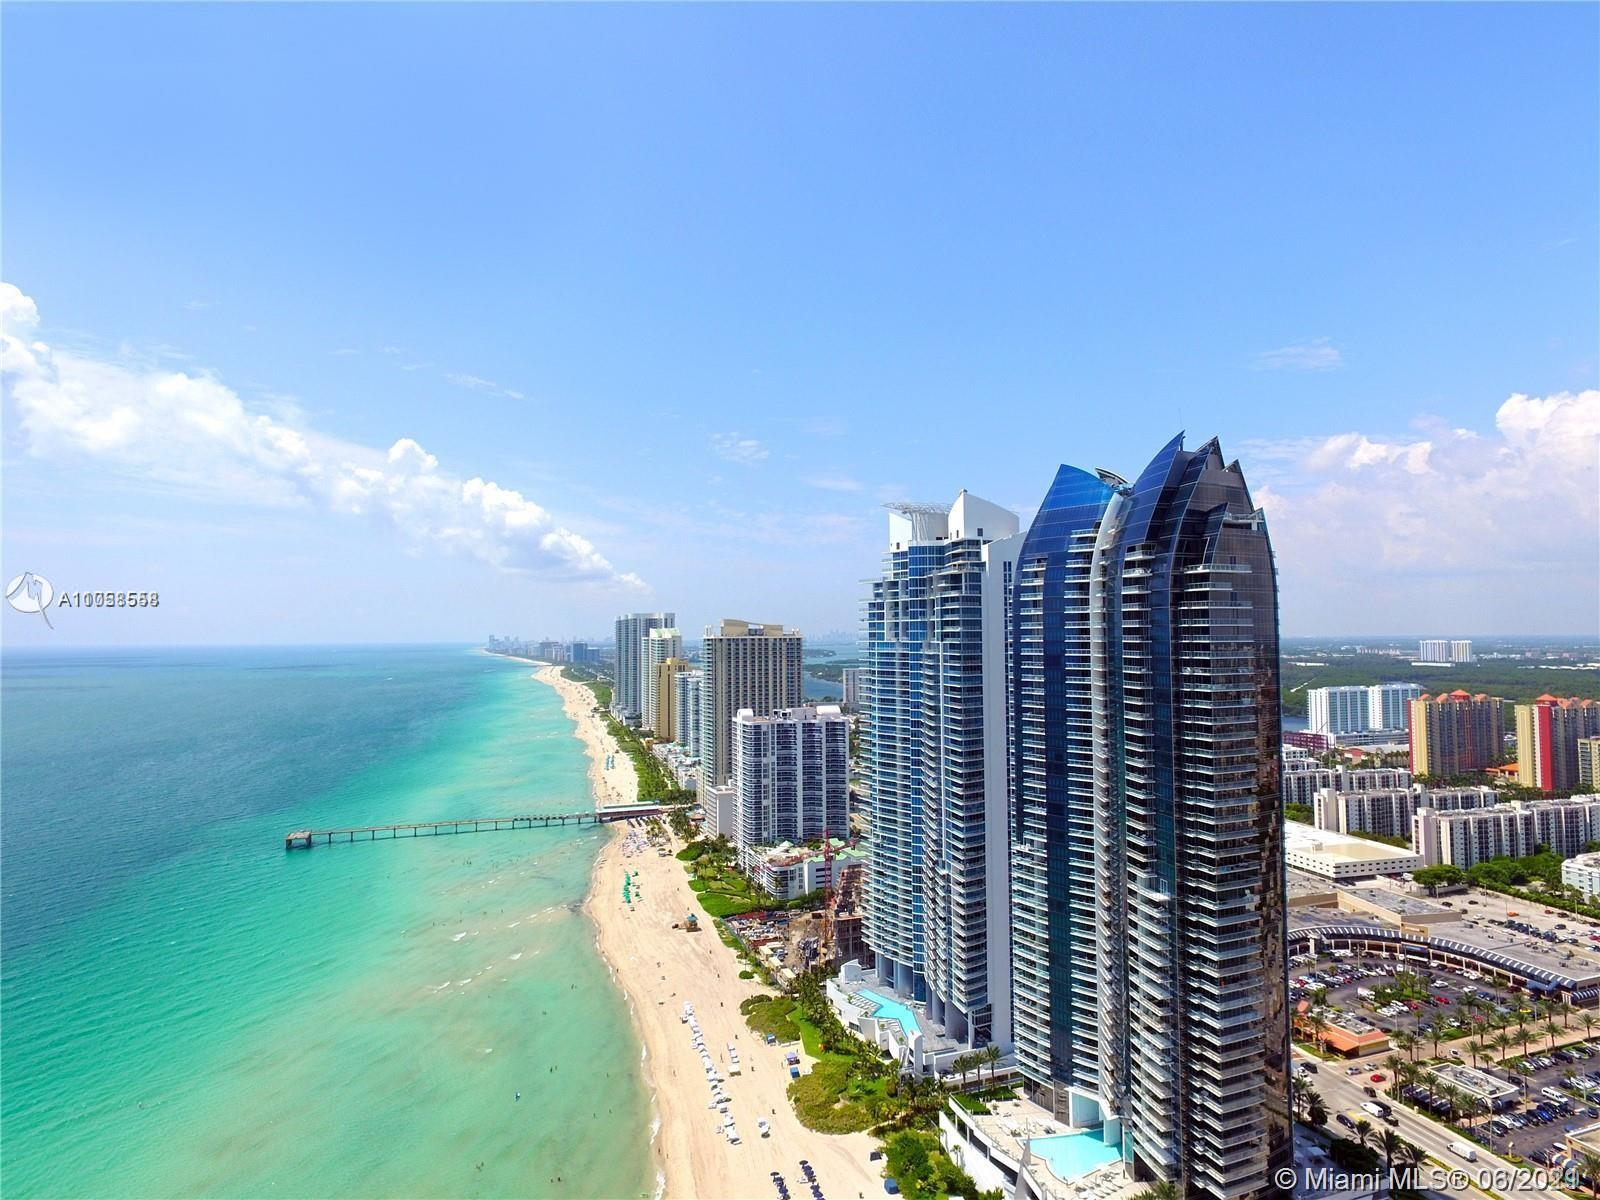 FIND YOUR PLACE AT THE JADE BEACH CONDO UNIT 2002, THIS IS DIRECT OCEANFRONT 1 BEDROOM + DEN AND 2 F